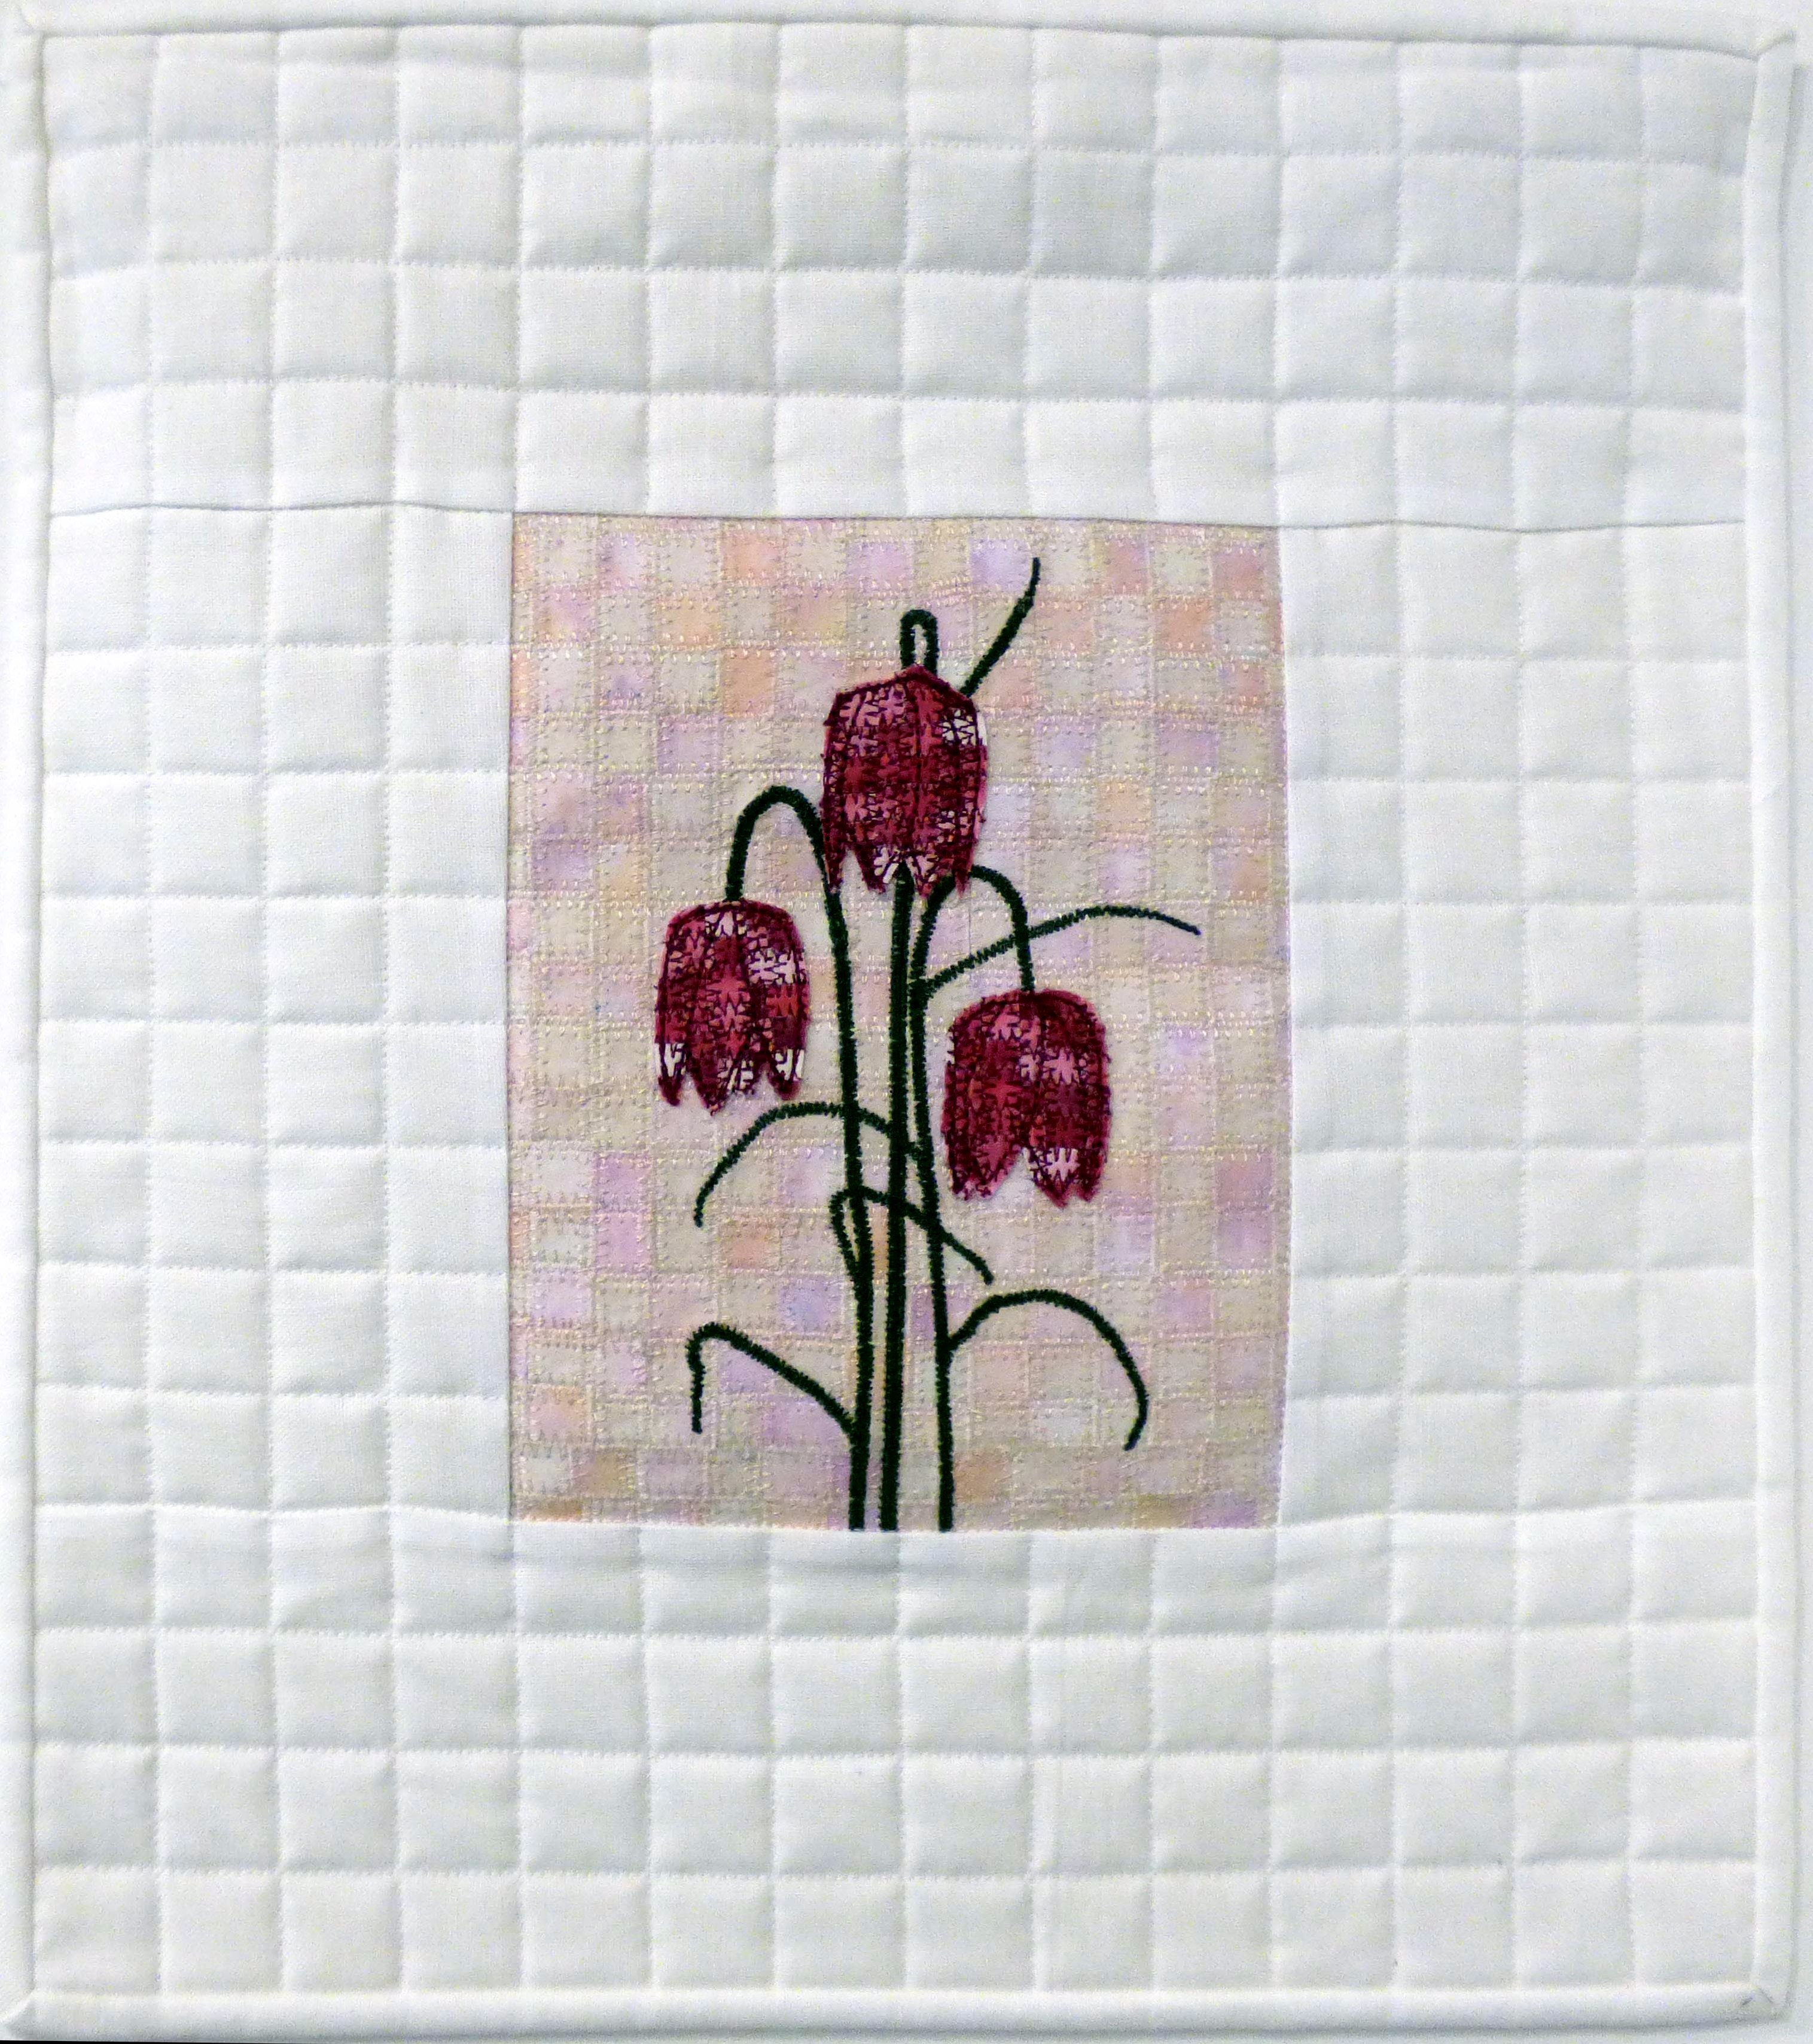 FRAGMENTS OF FRITILLARIA by Suzanne Snape, Natural Progression Group, July 2021